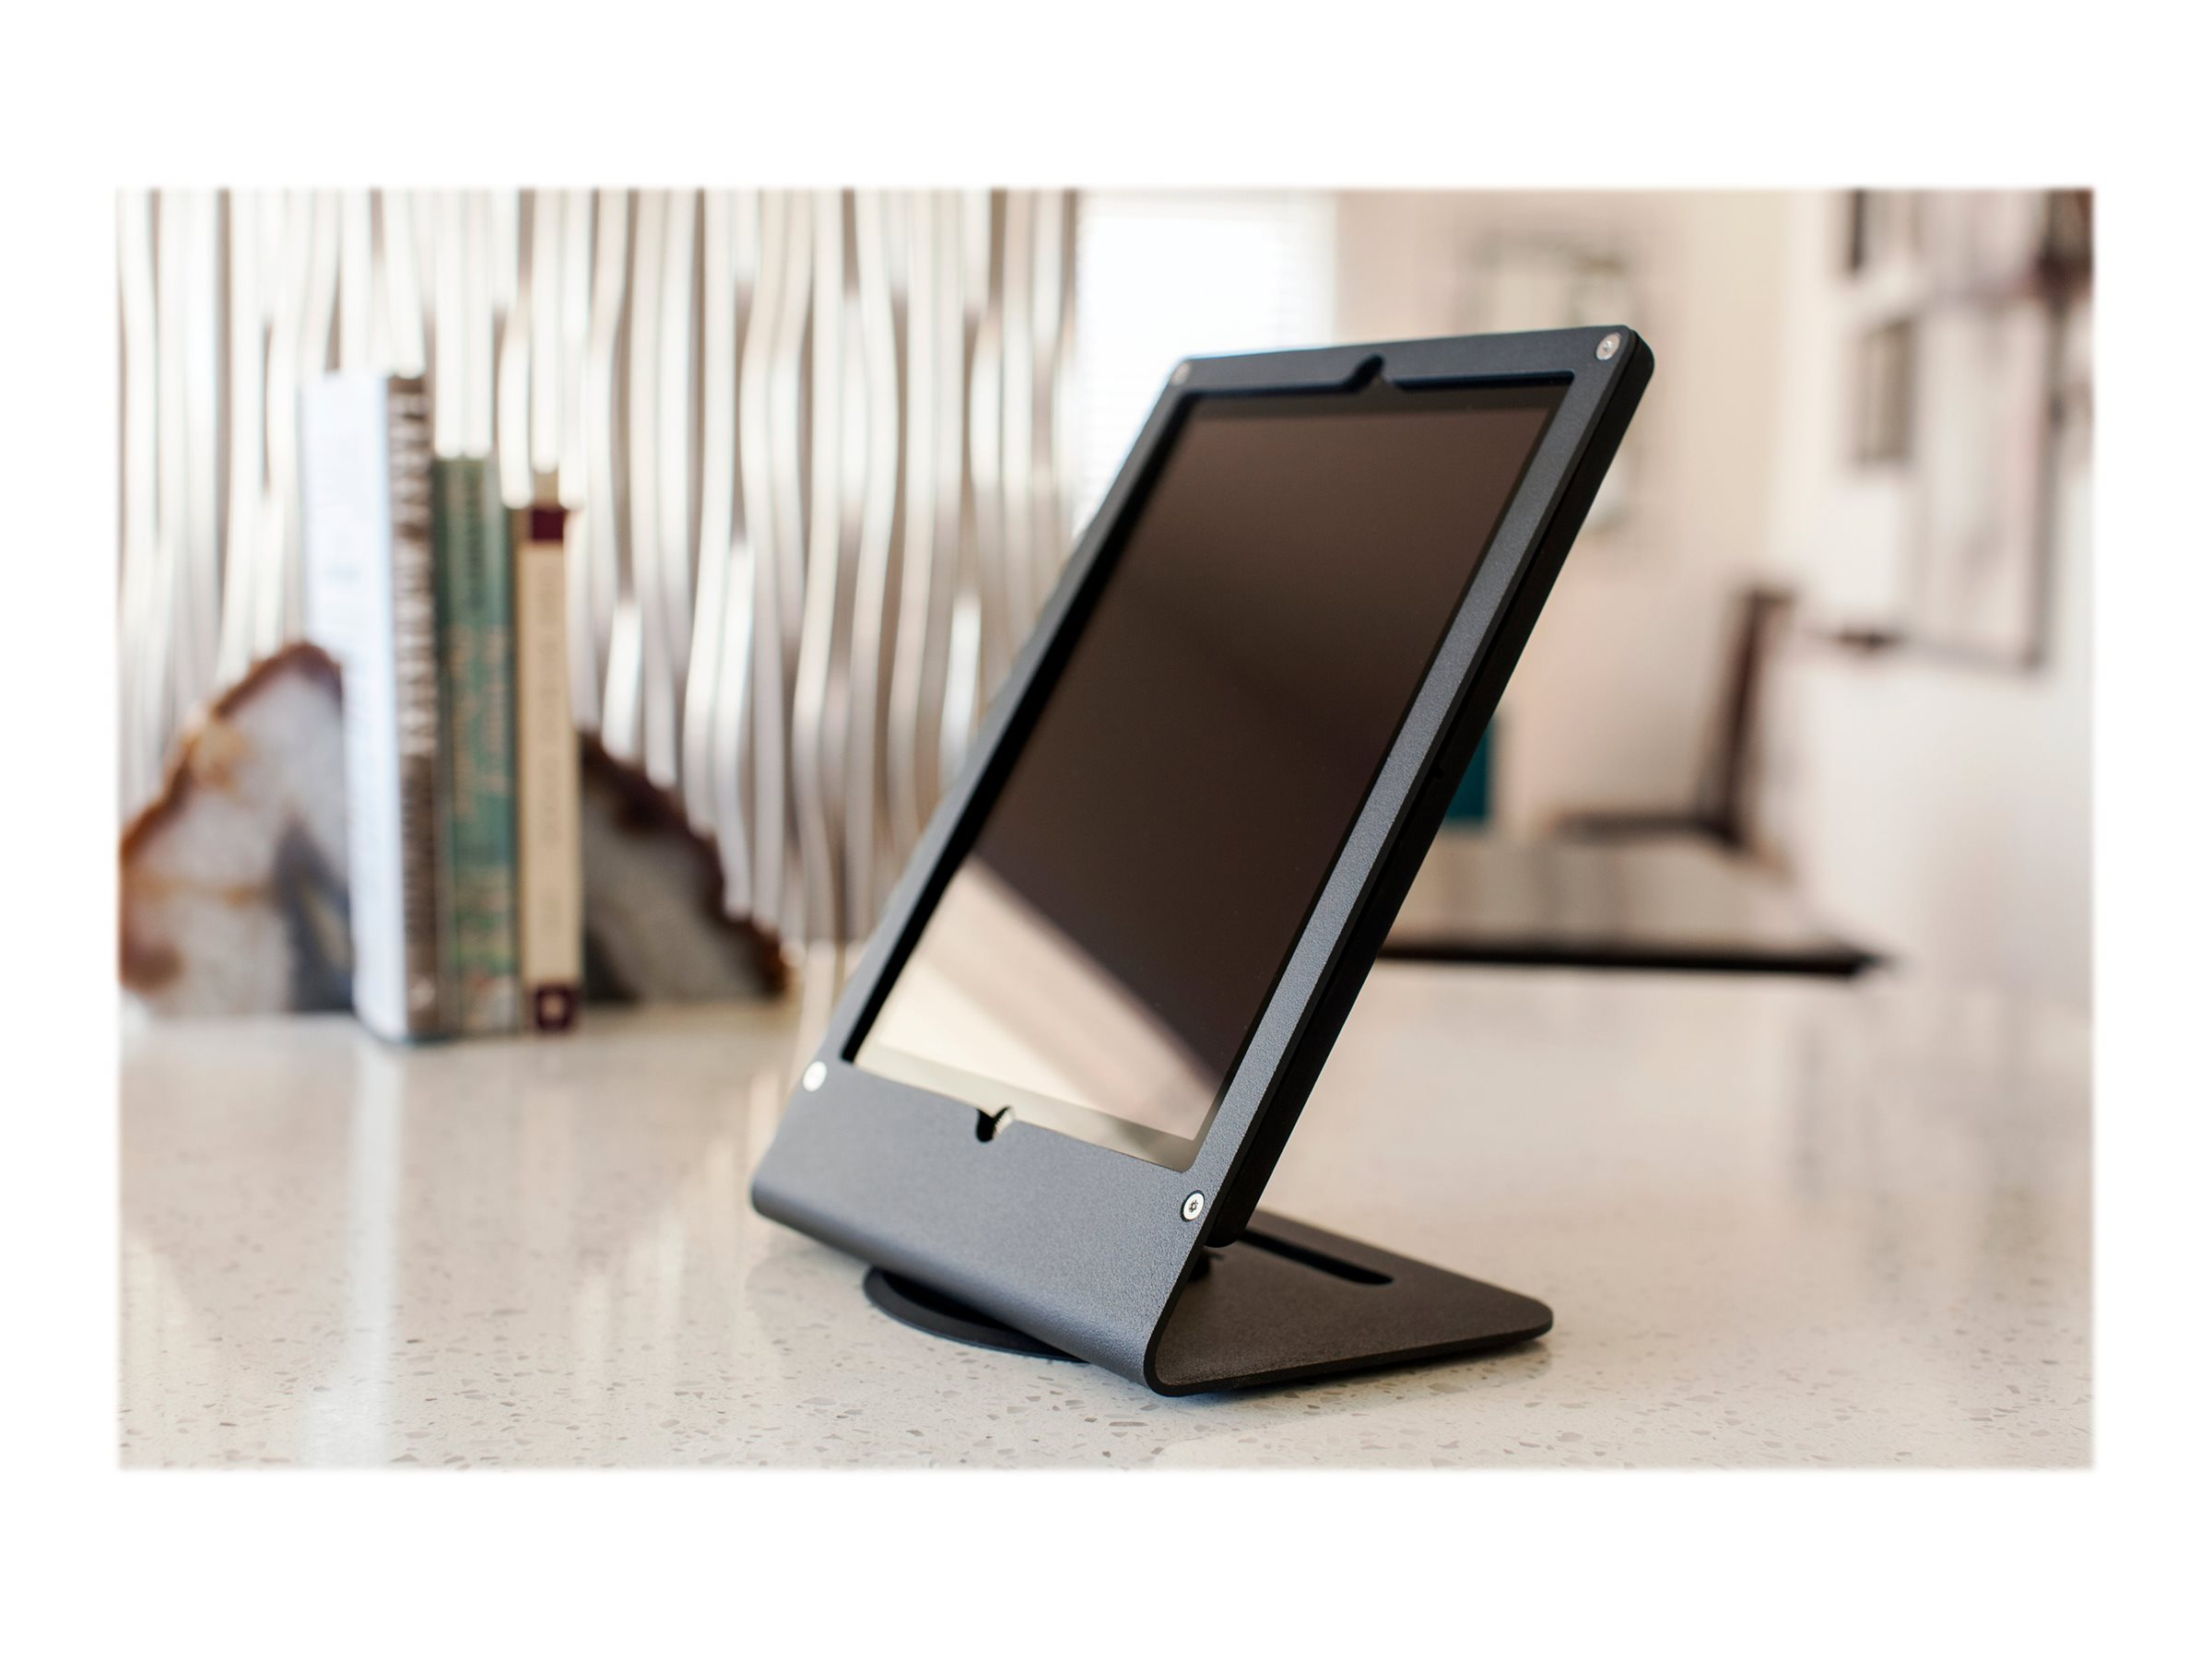 Kensington WindFall Portrait Stand by Heckler Design for iPad Mini 4, 3, 2, 1, K67957US